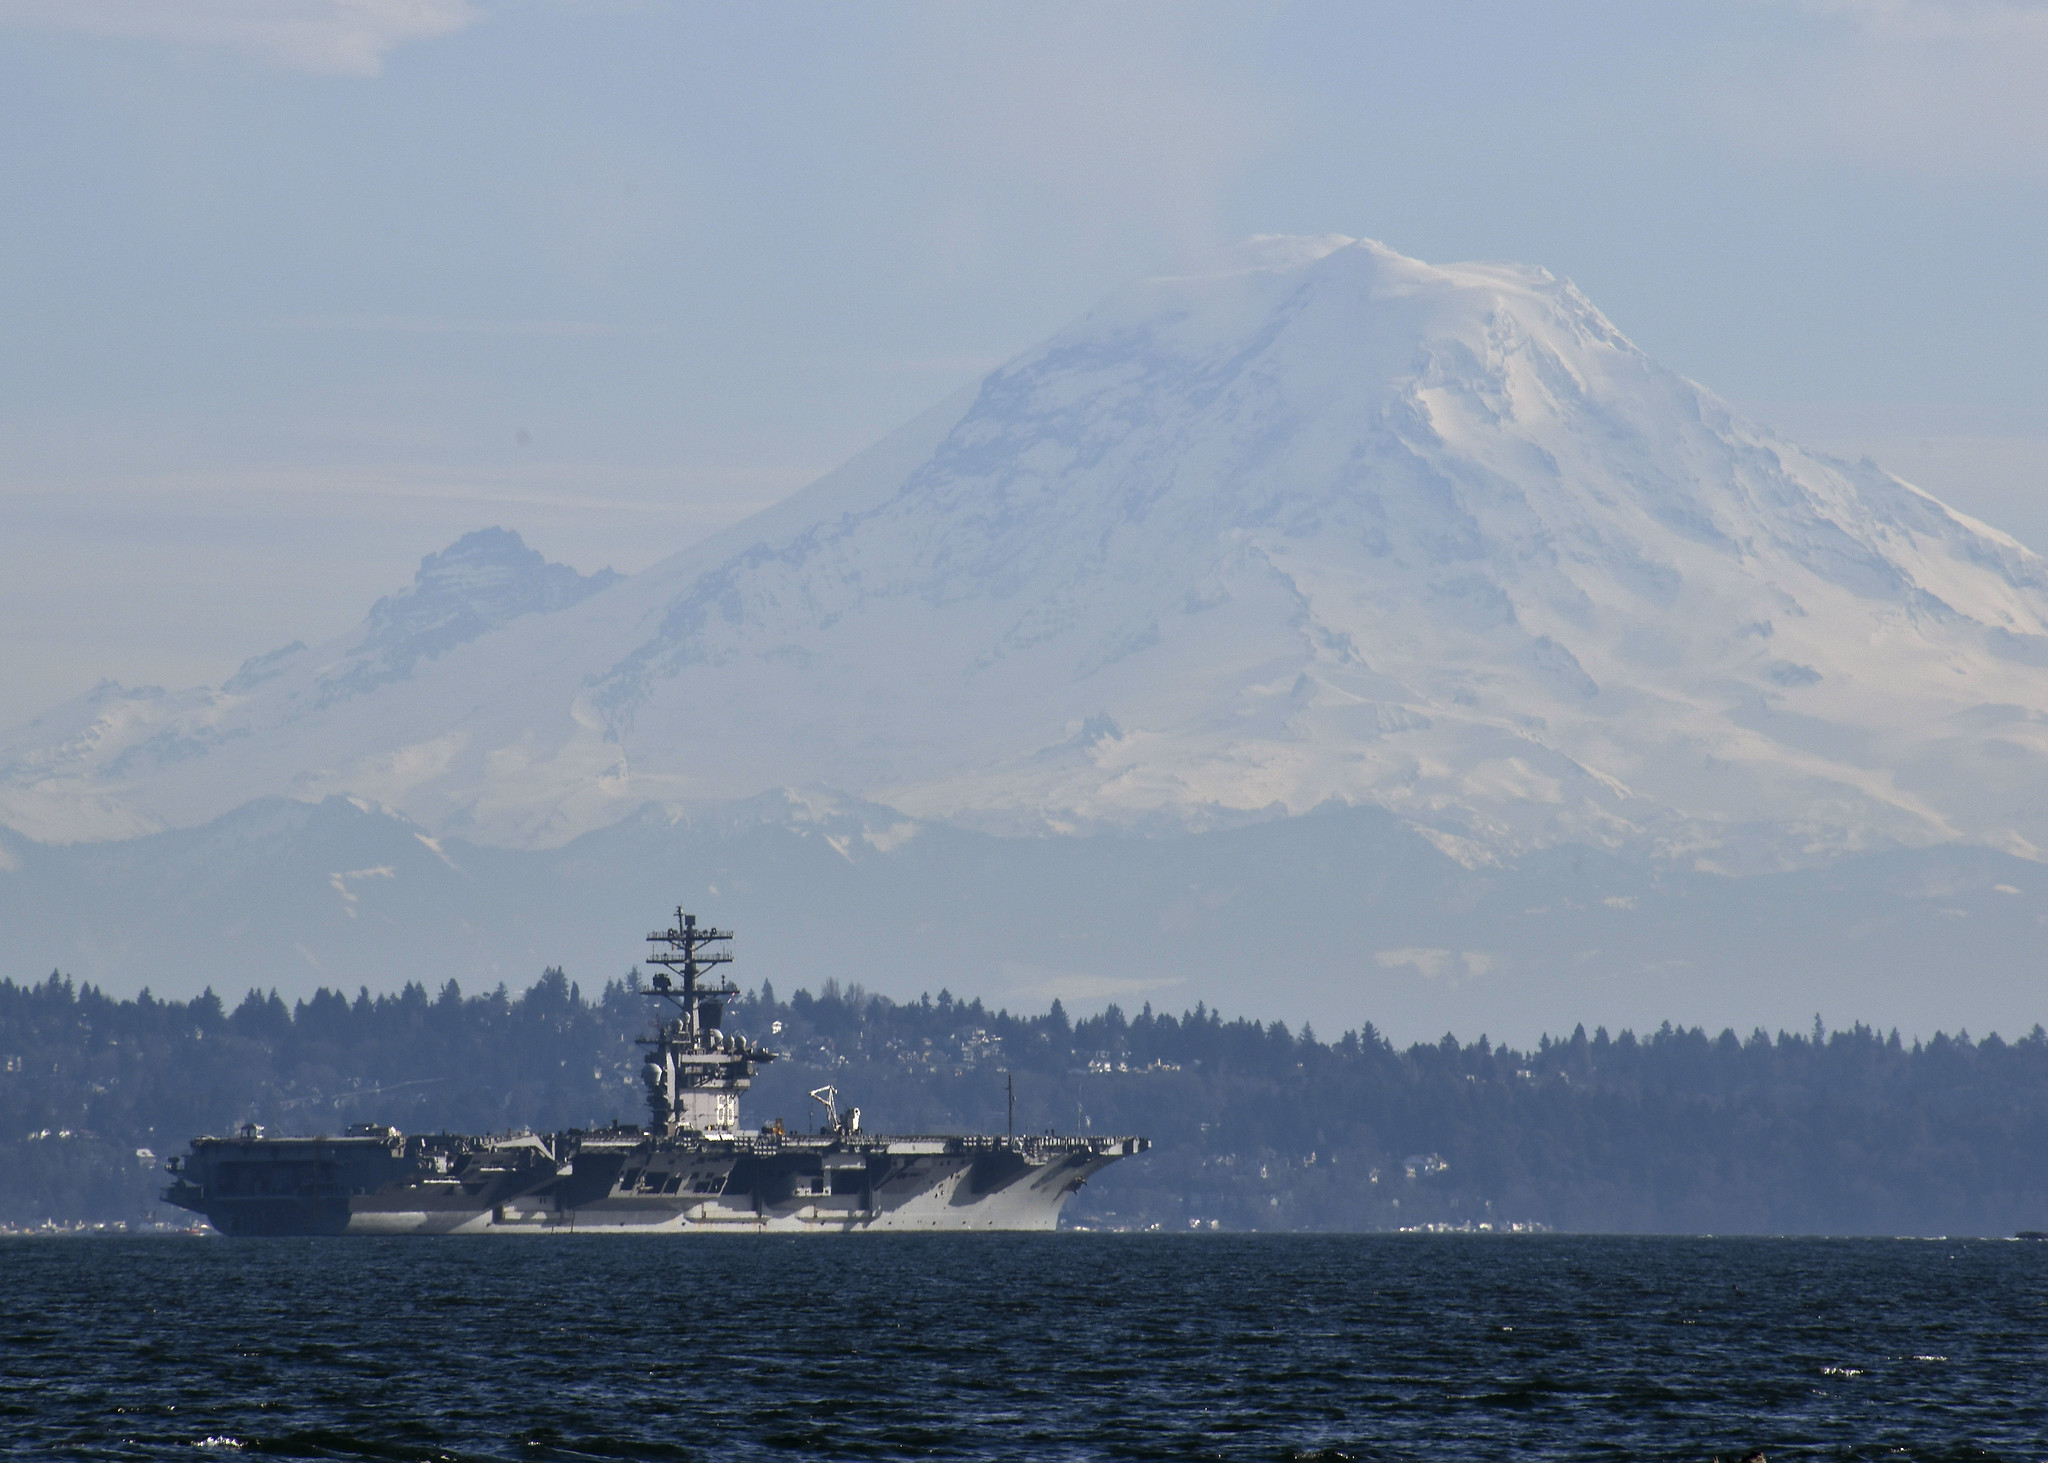 The aircraft carrier Nimitz (CVN 68) passes Mount Rainier while transiting Puget Sound on Feb. 21, 2020. (Mass Communication Specialist Seaman Olivia Banmally Nichols/Navy)